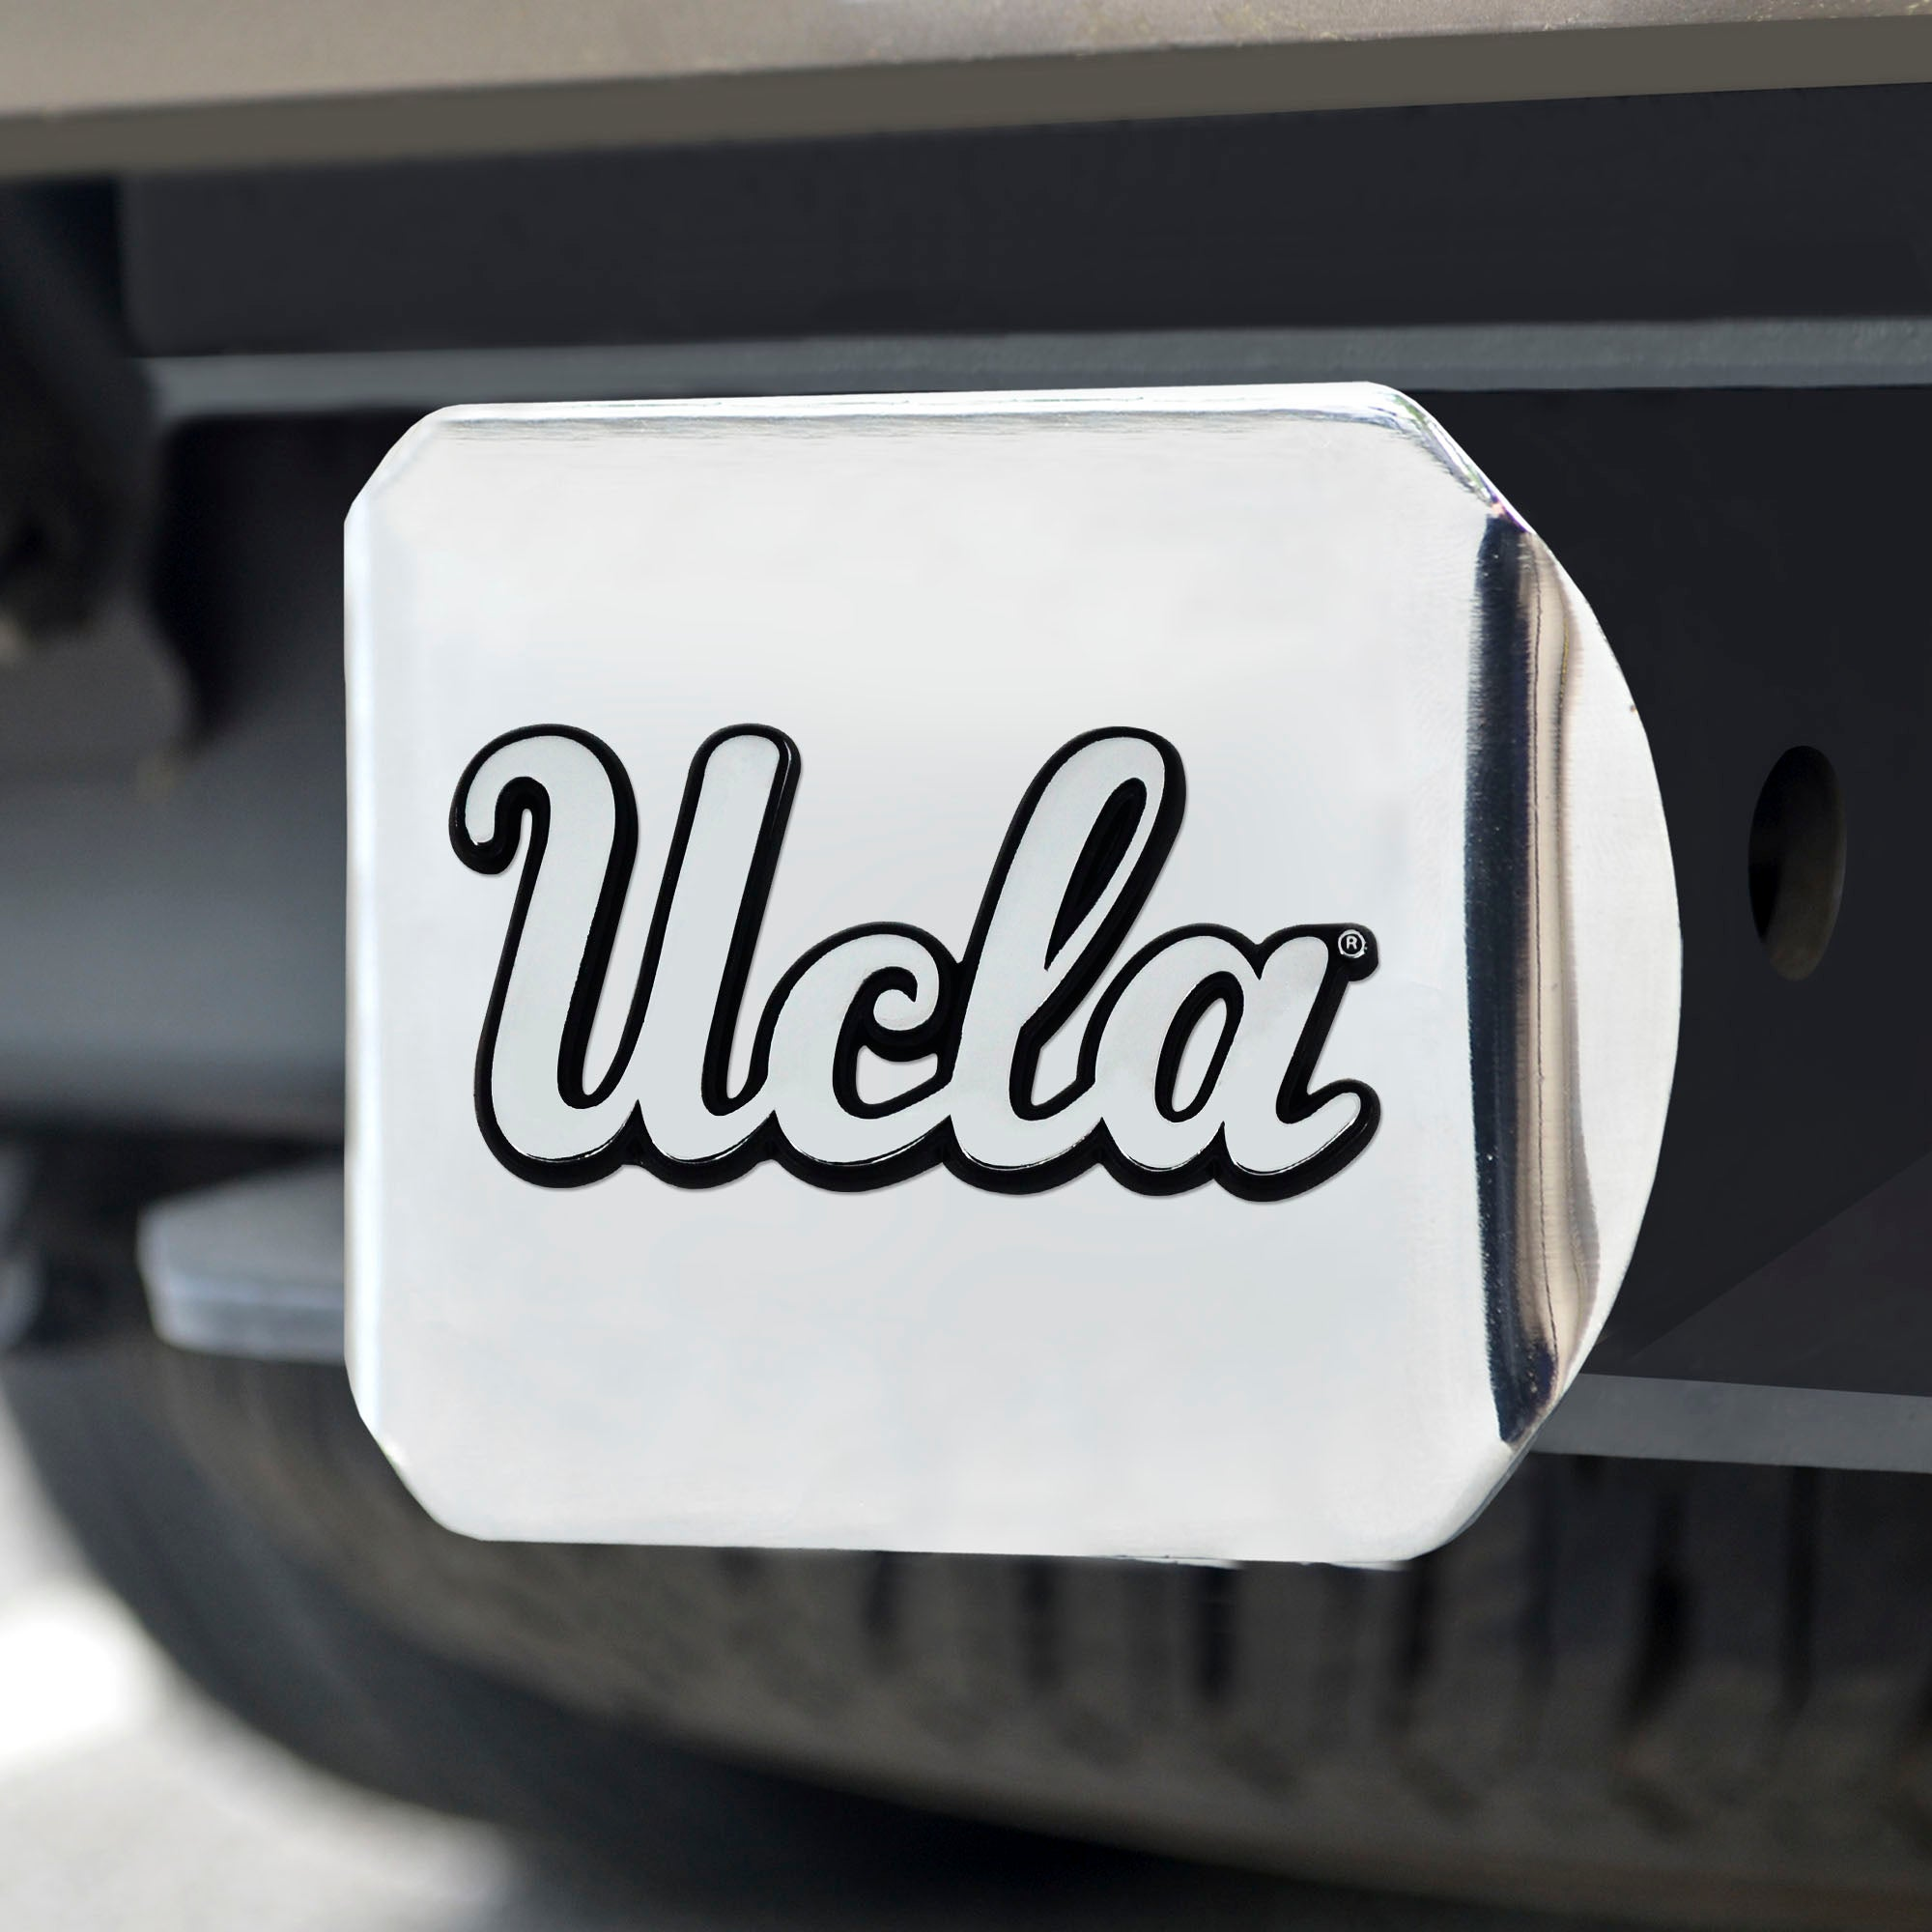 University of California - Los Angeles (UCLA) Chrome Hitch Cover- Chrome 3.4